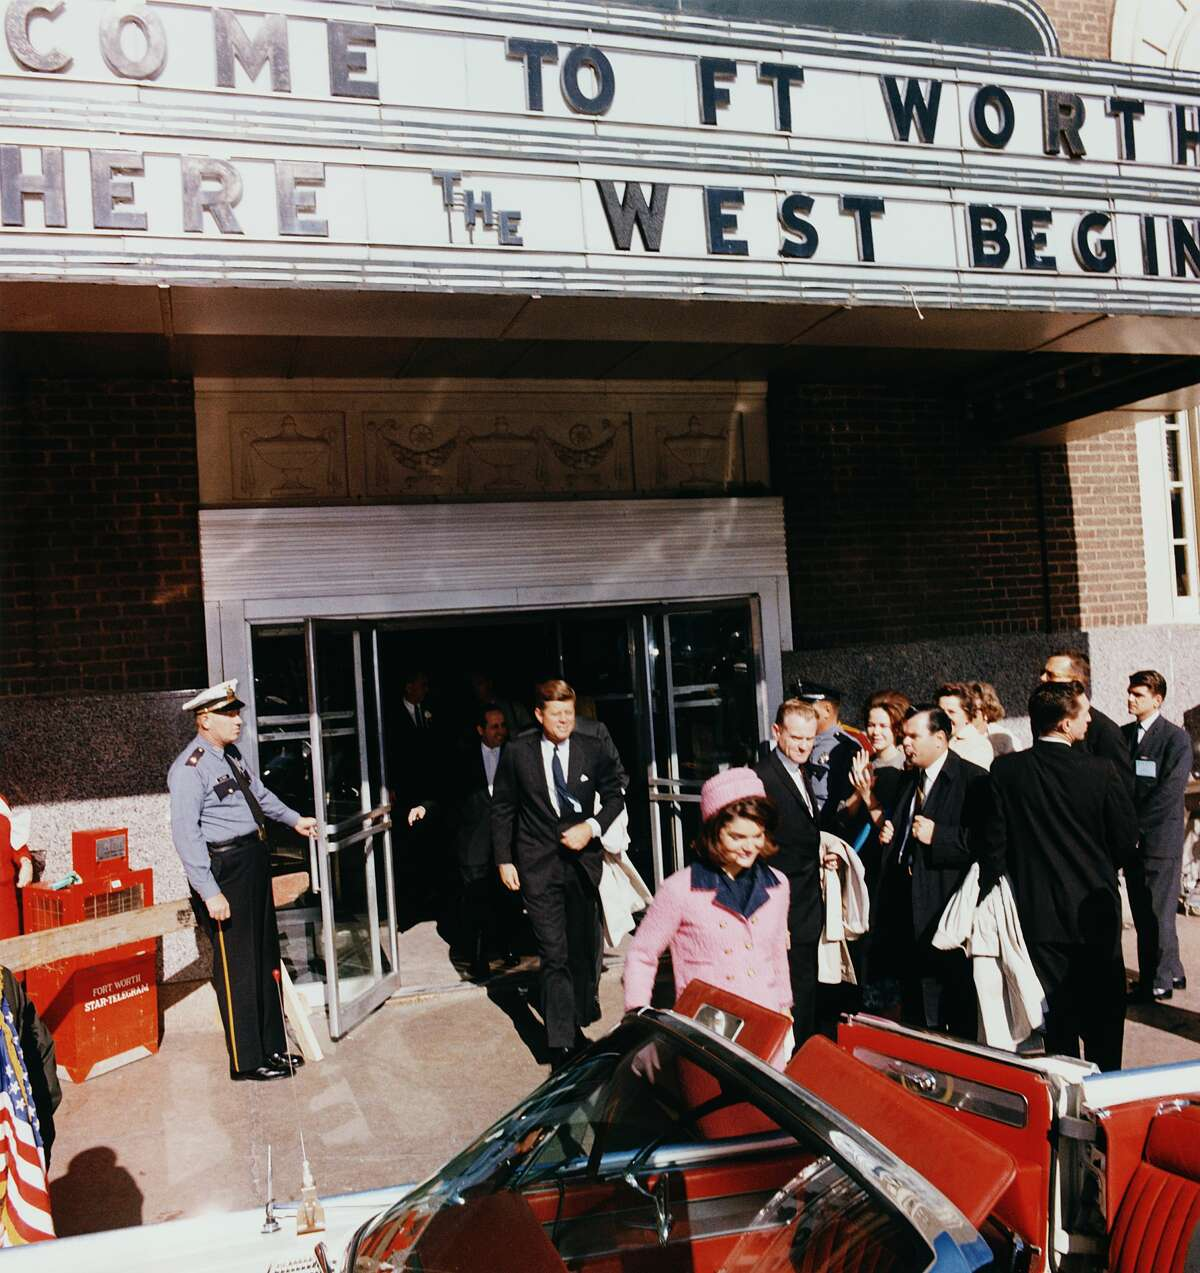 President John F. Kennedy and First Lady Jacqueline Kennedy emerge from a Fort Worth, Texas, theater, into a waiting car on the day of Kennedy's assassination, November 22, 1963.